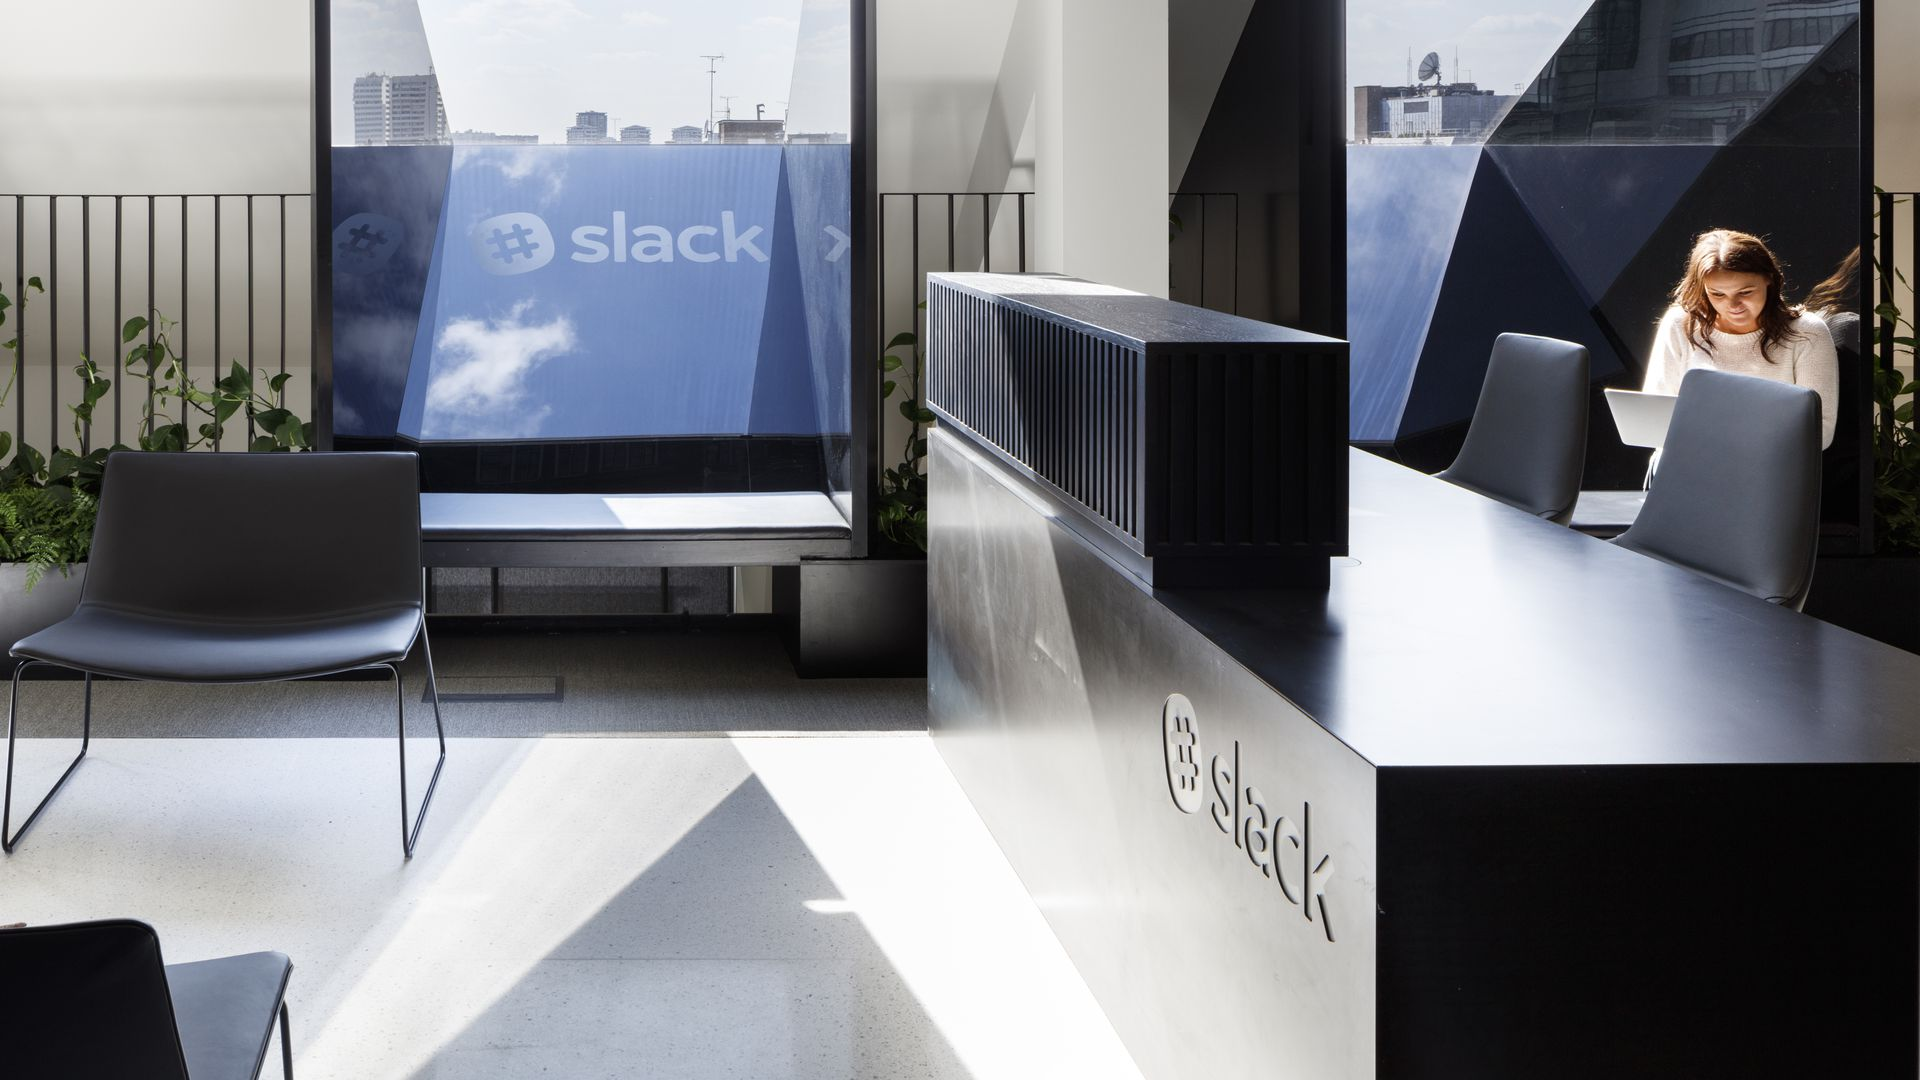 Slack's London office